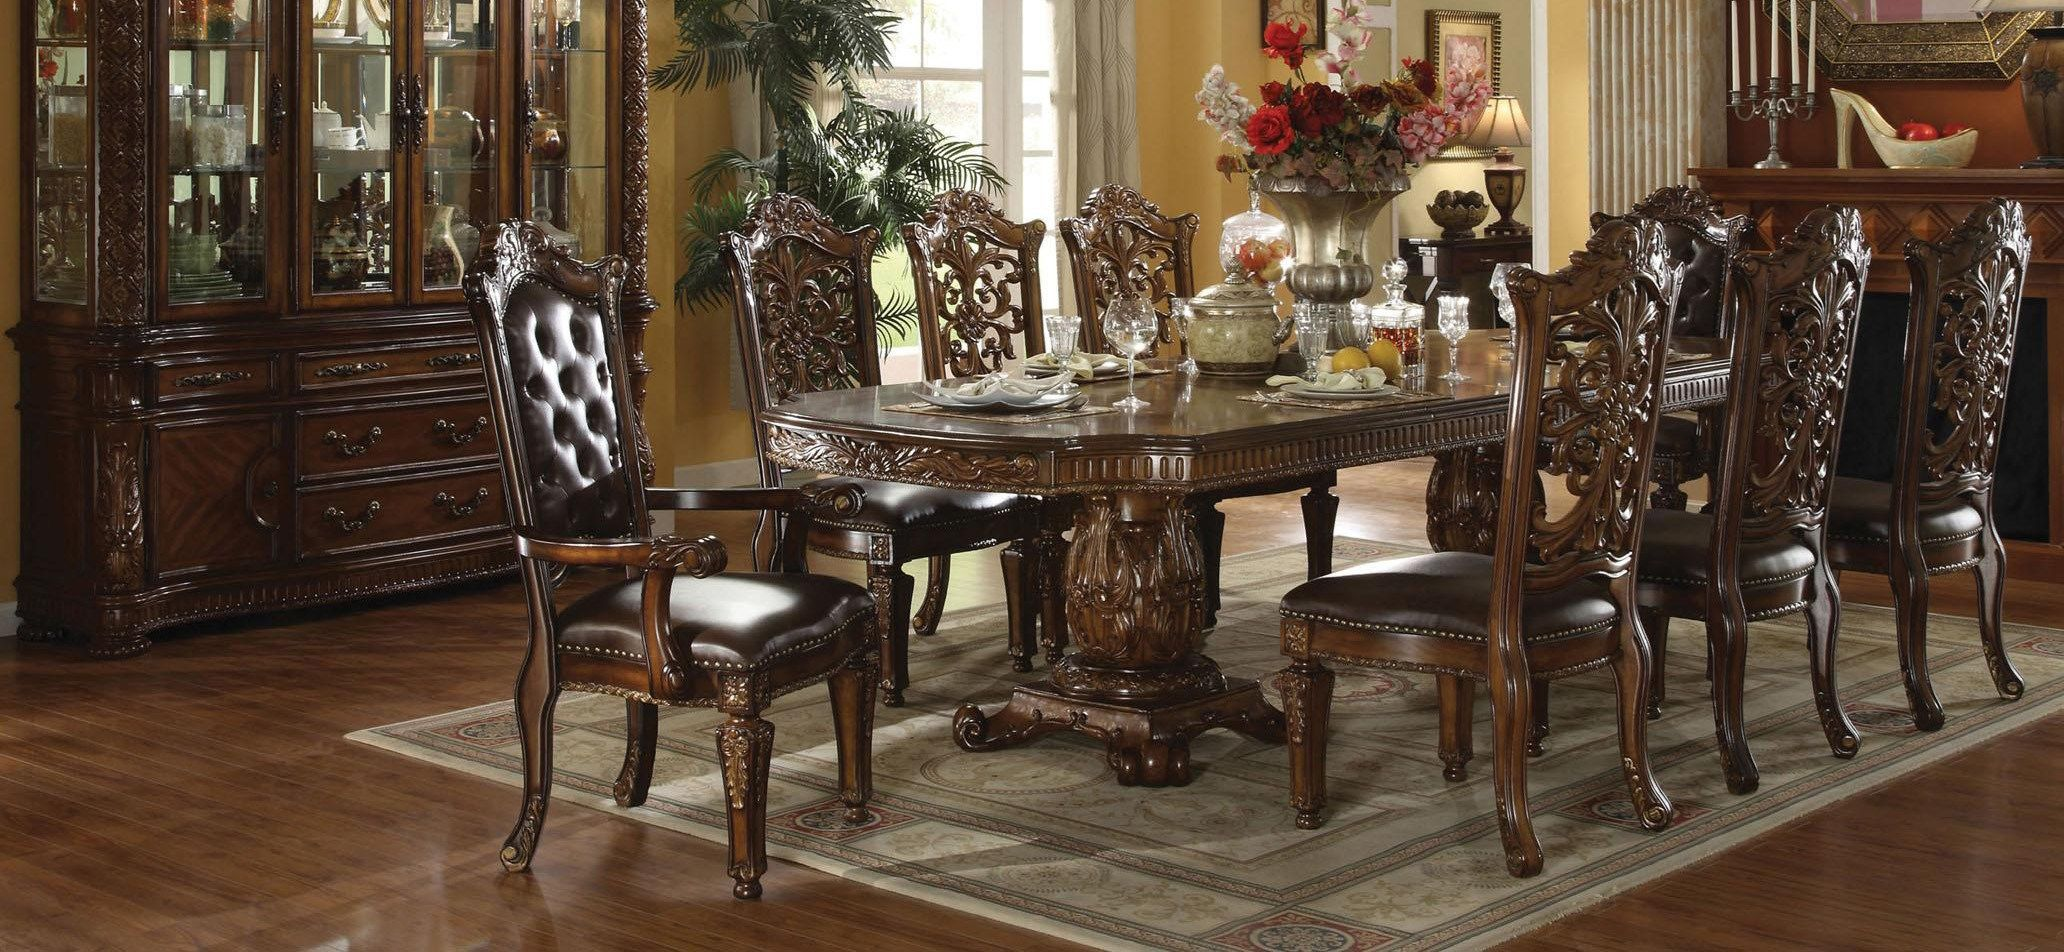 Del Sol Dining Room  Awesome Antiques And Great Fakes Enchanting Formal Dining Room Collections Design Inspiration